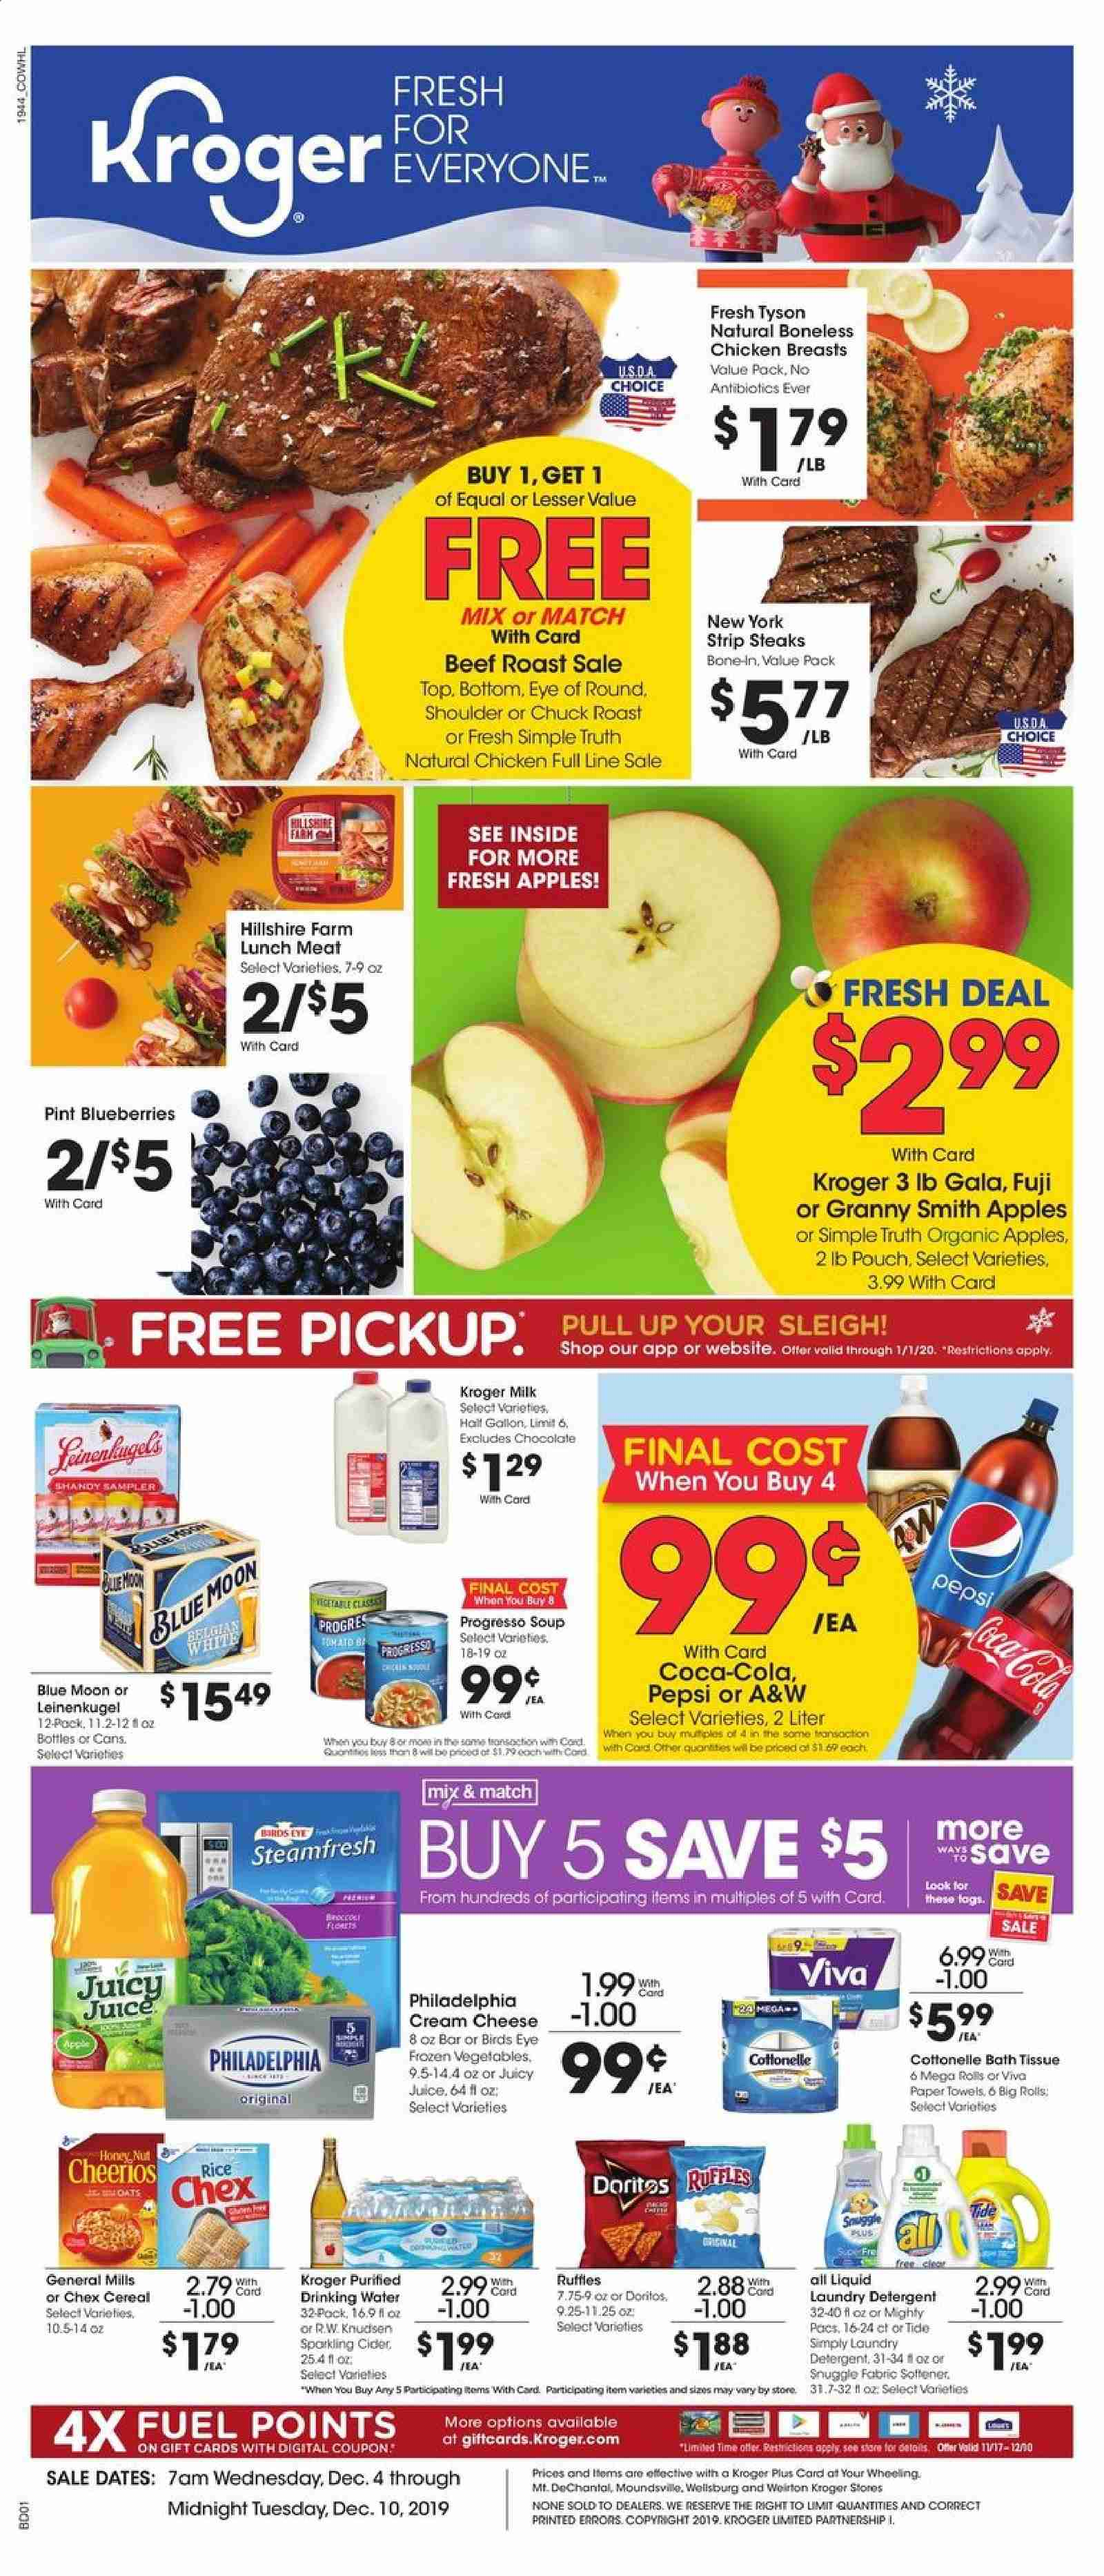 Kroger Flyer - 12.04.2019 - 12.10.2019 - Sales products - apples, bath tissue, beef meat, beef roast, blueberries, bottom, broccoli, cereals, coca-cola, cottonelle, cream cheese, dates, detergent, doritos, fuel, lunchmeat, milk, rice, snuggle, sparkling cider, tide, hillshire farm, honey, philadelphia, cheerios, chicken, chicken breast, paper towel, pepsi, oats, organic, chocolate, drinking water, cheese, juice, soup, softener, cereal, blue moon, liquid, meat, laundry detergent, roast, cream. Page 1.